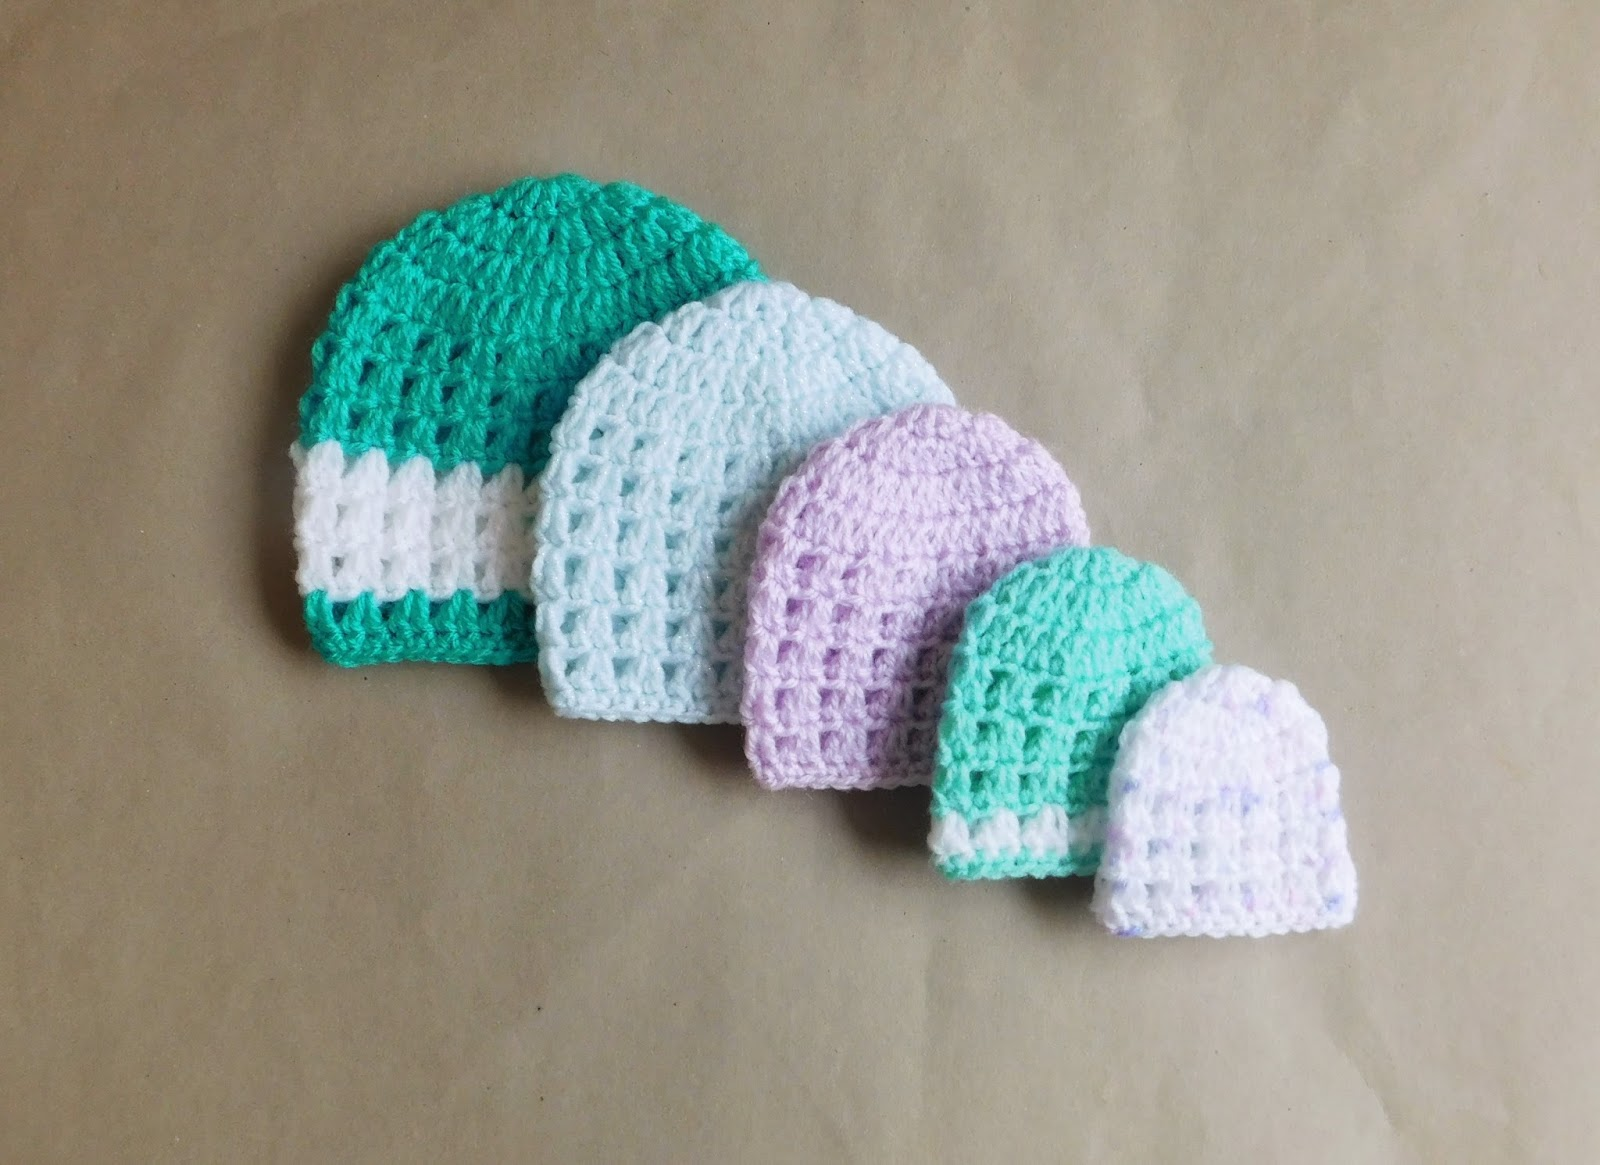 crochet baby hats valerie baby hats 0-3months small newborn large preemie medium preemie  small preemie nbukhdj